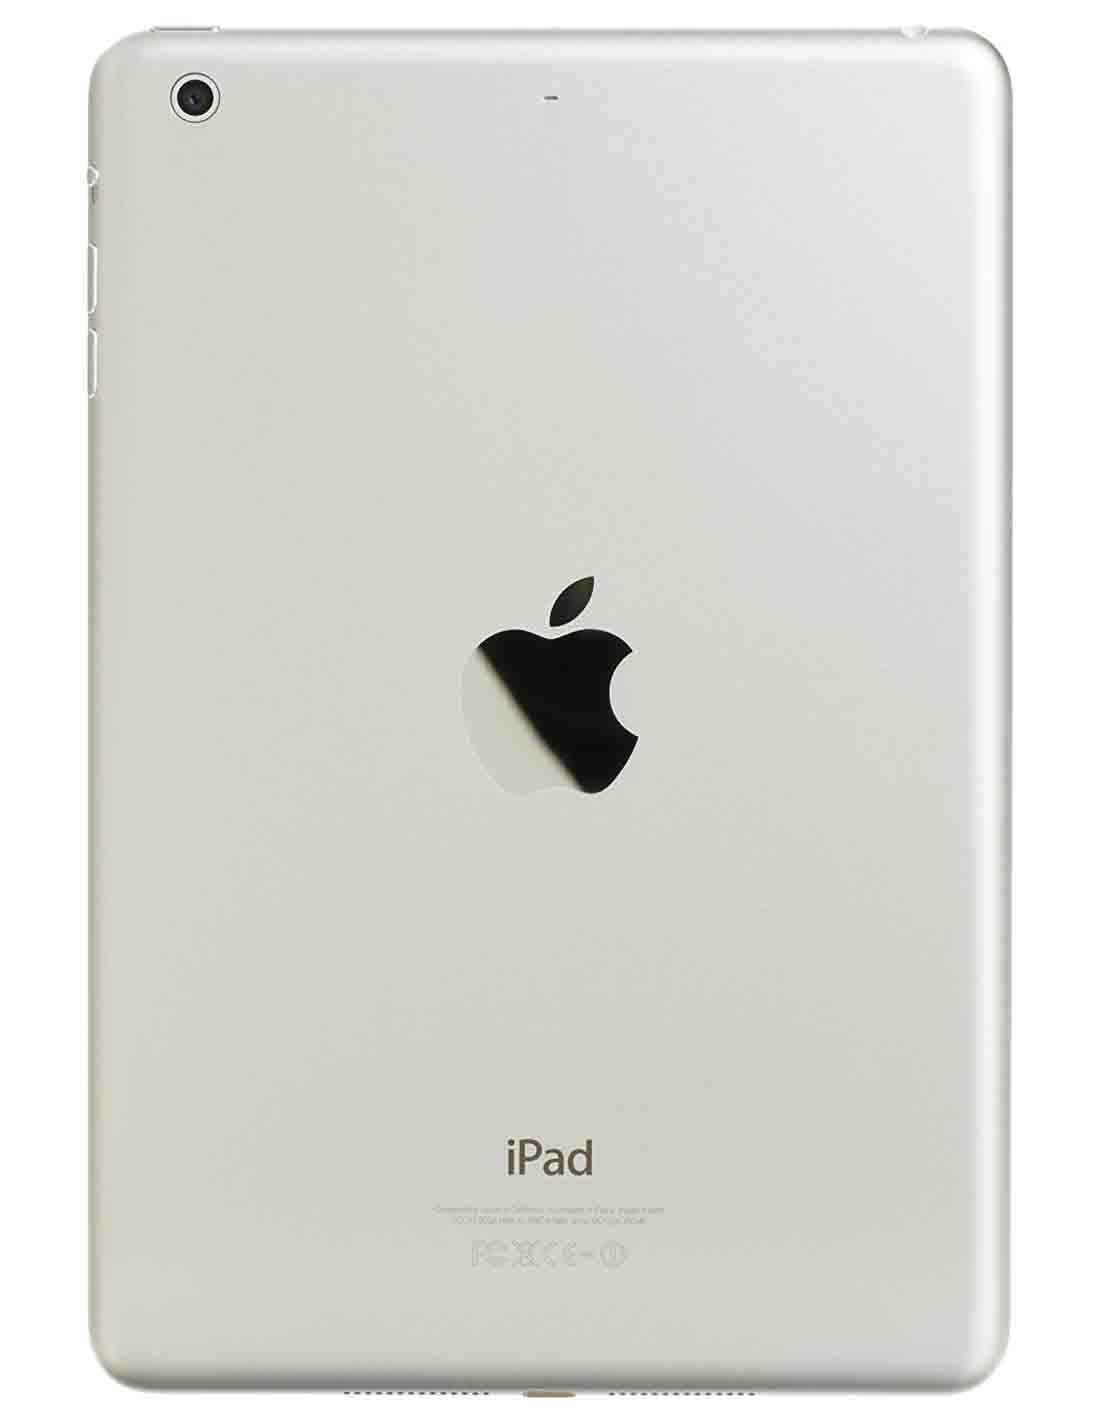 Apple iPad mini 2 Wi-Fi and Cellular - Space Grey ME800B/A Images and Photos